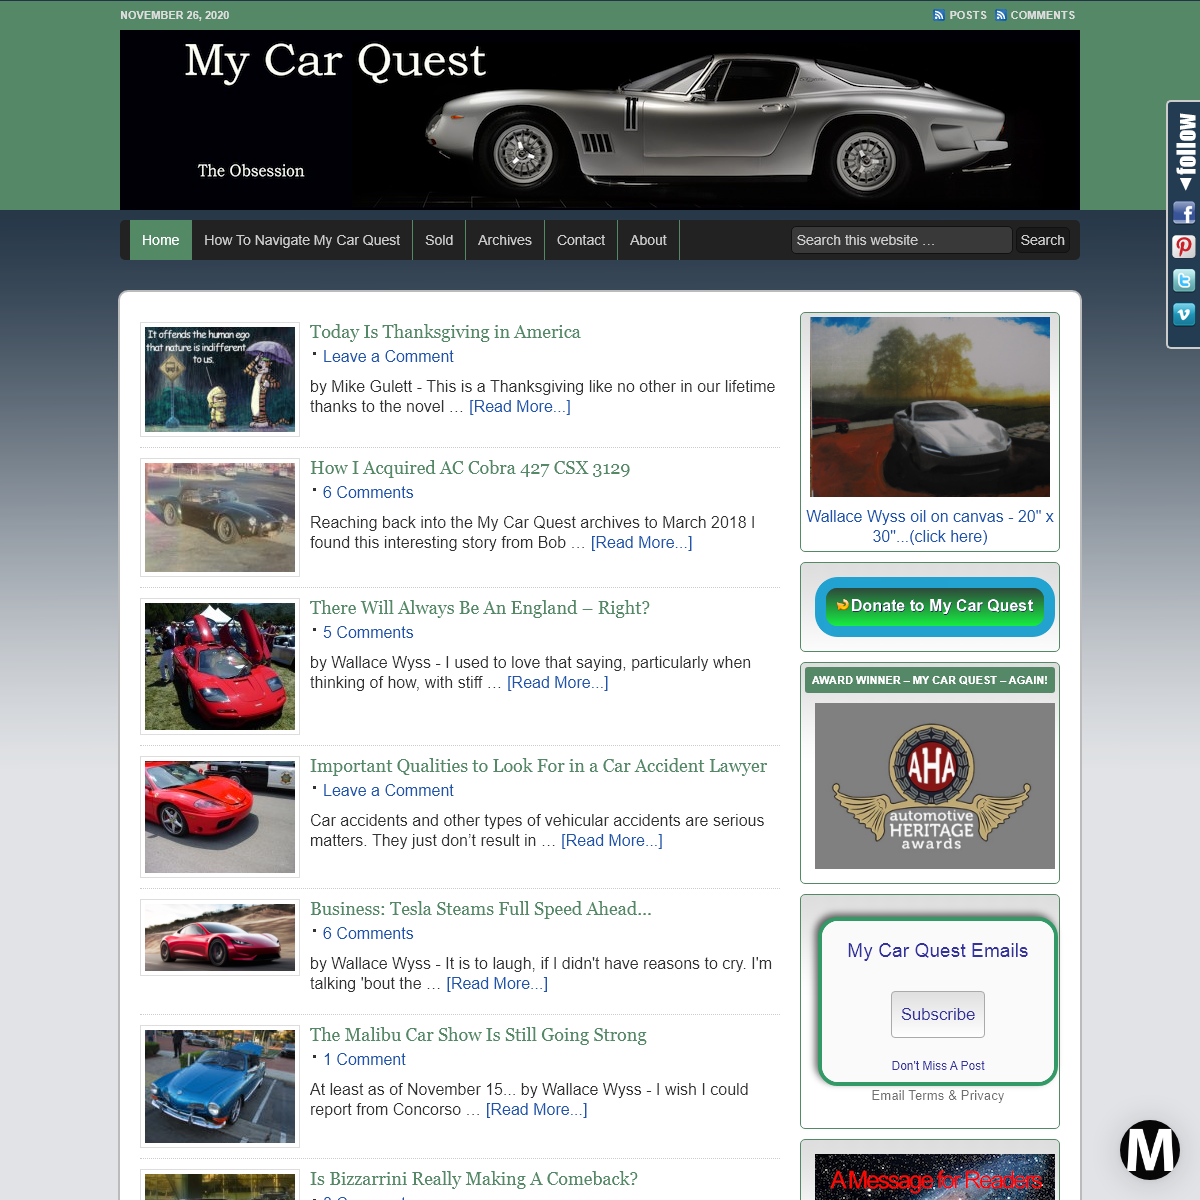 MyCarQuest.com - The Obsession